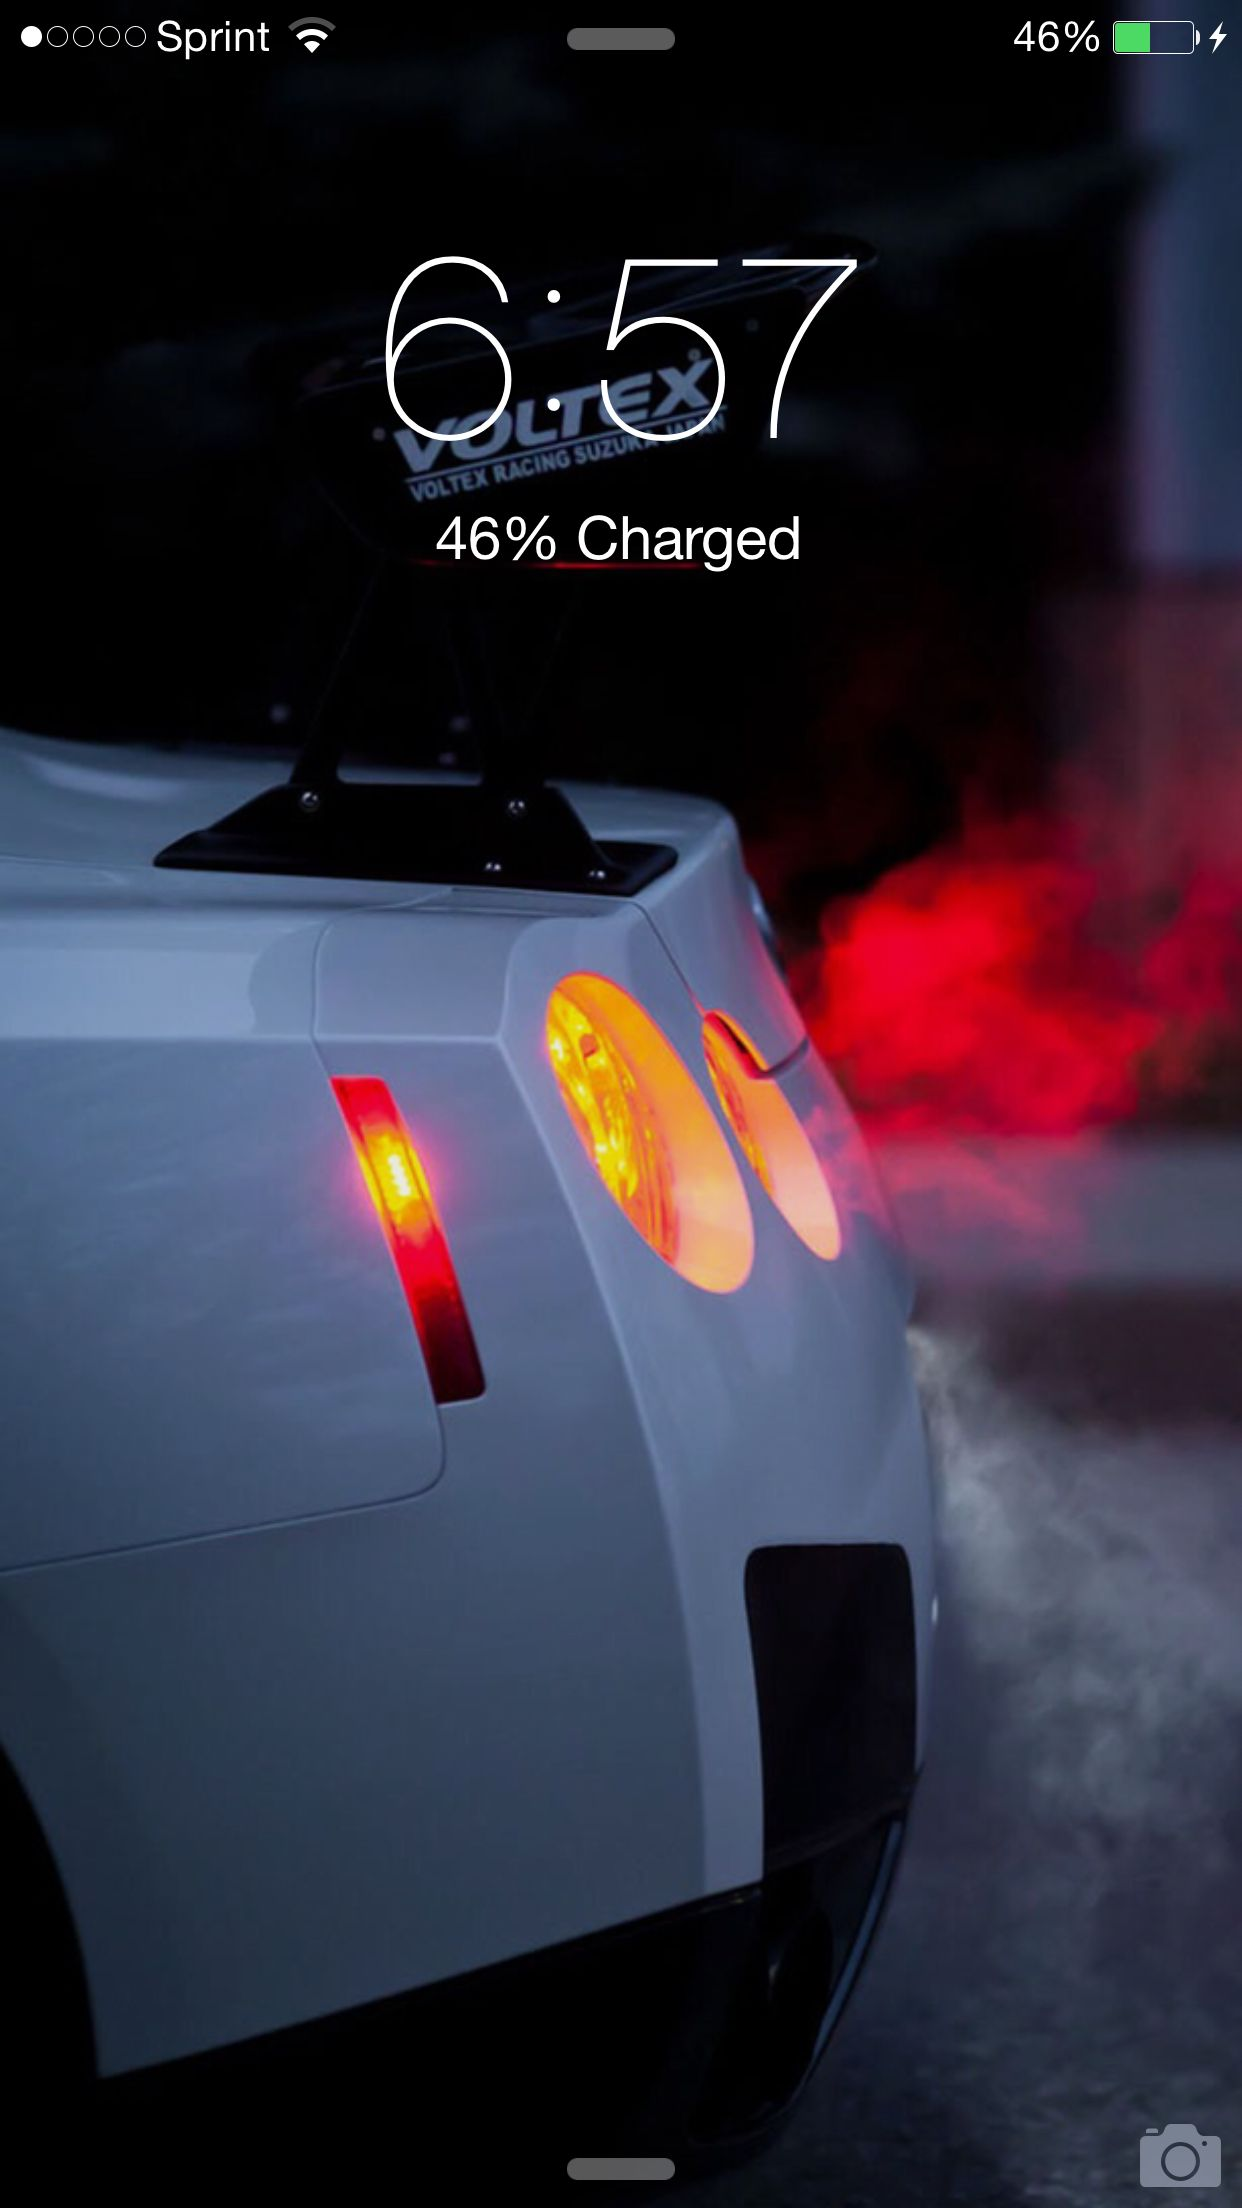 Iphone 6 Plus Wallpaper Of The Rear End Of A Beautiful Pearl White Nissan Gt R R35 Nissan Gtr Nissan Gtr Wallpapers Gtr